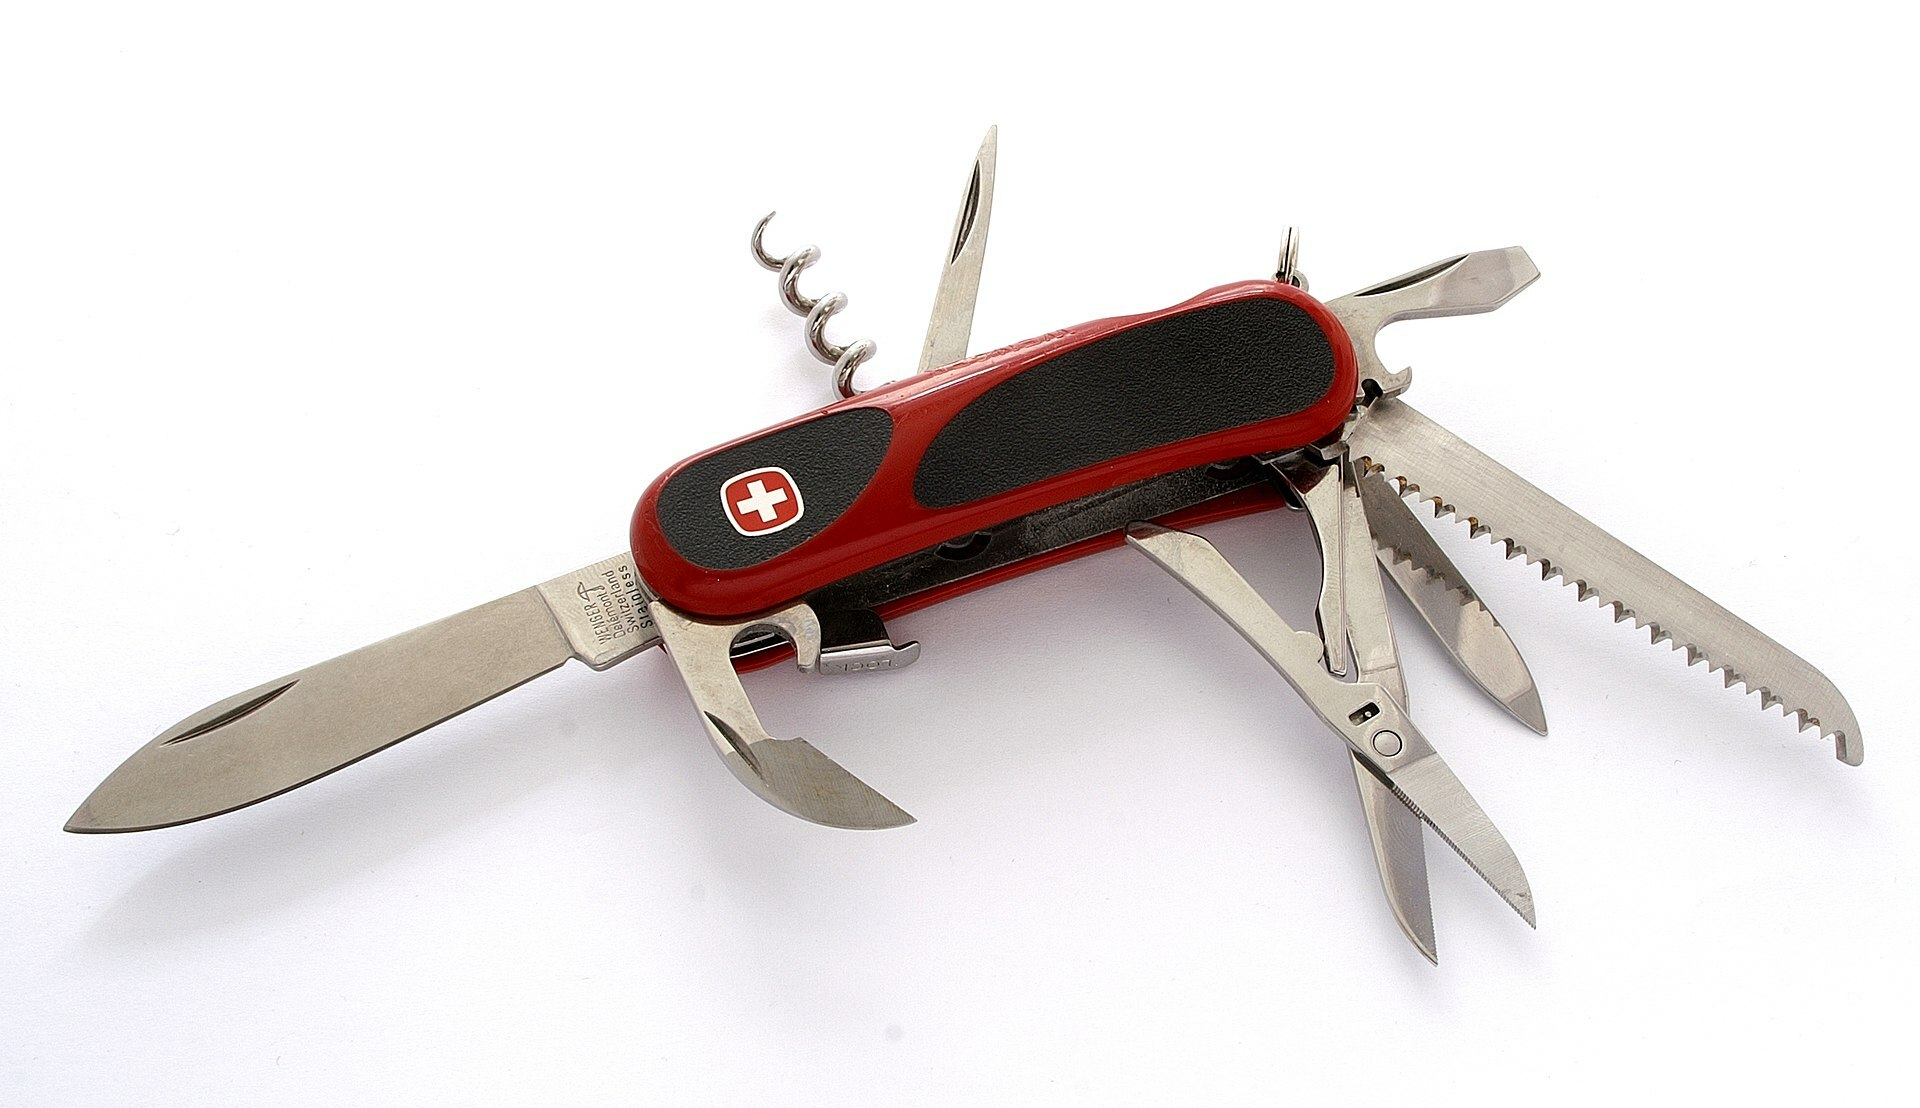 A Wenger Swiss Army knife